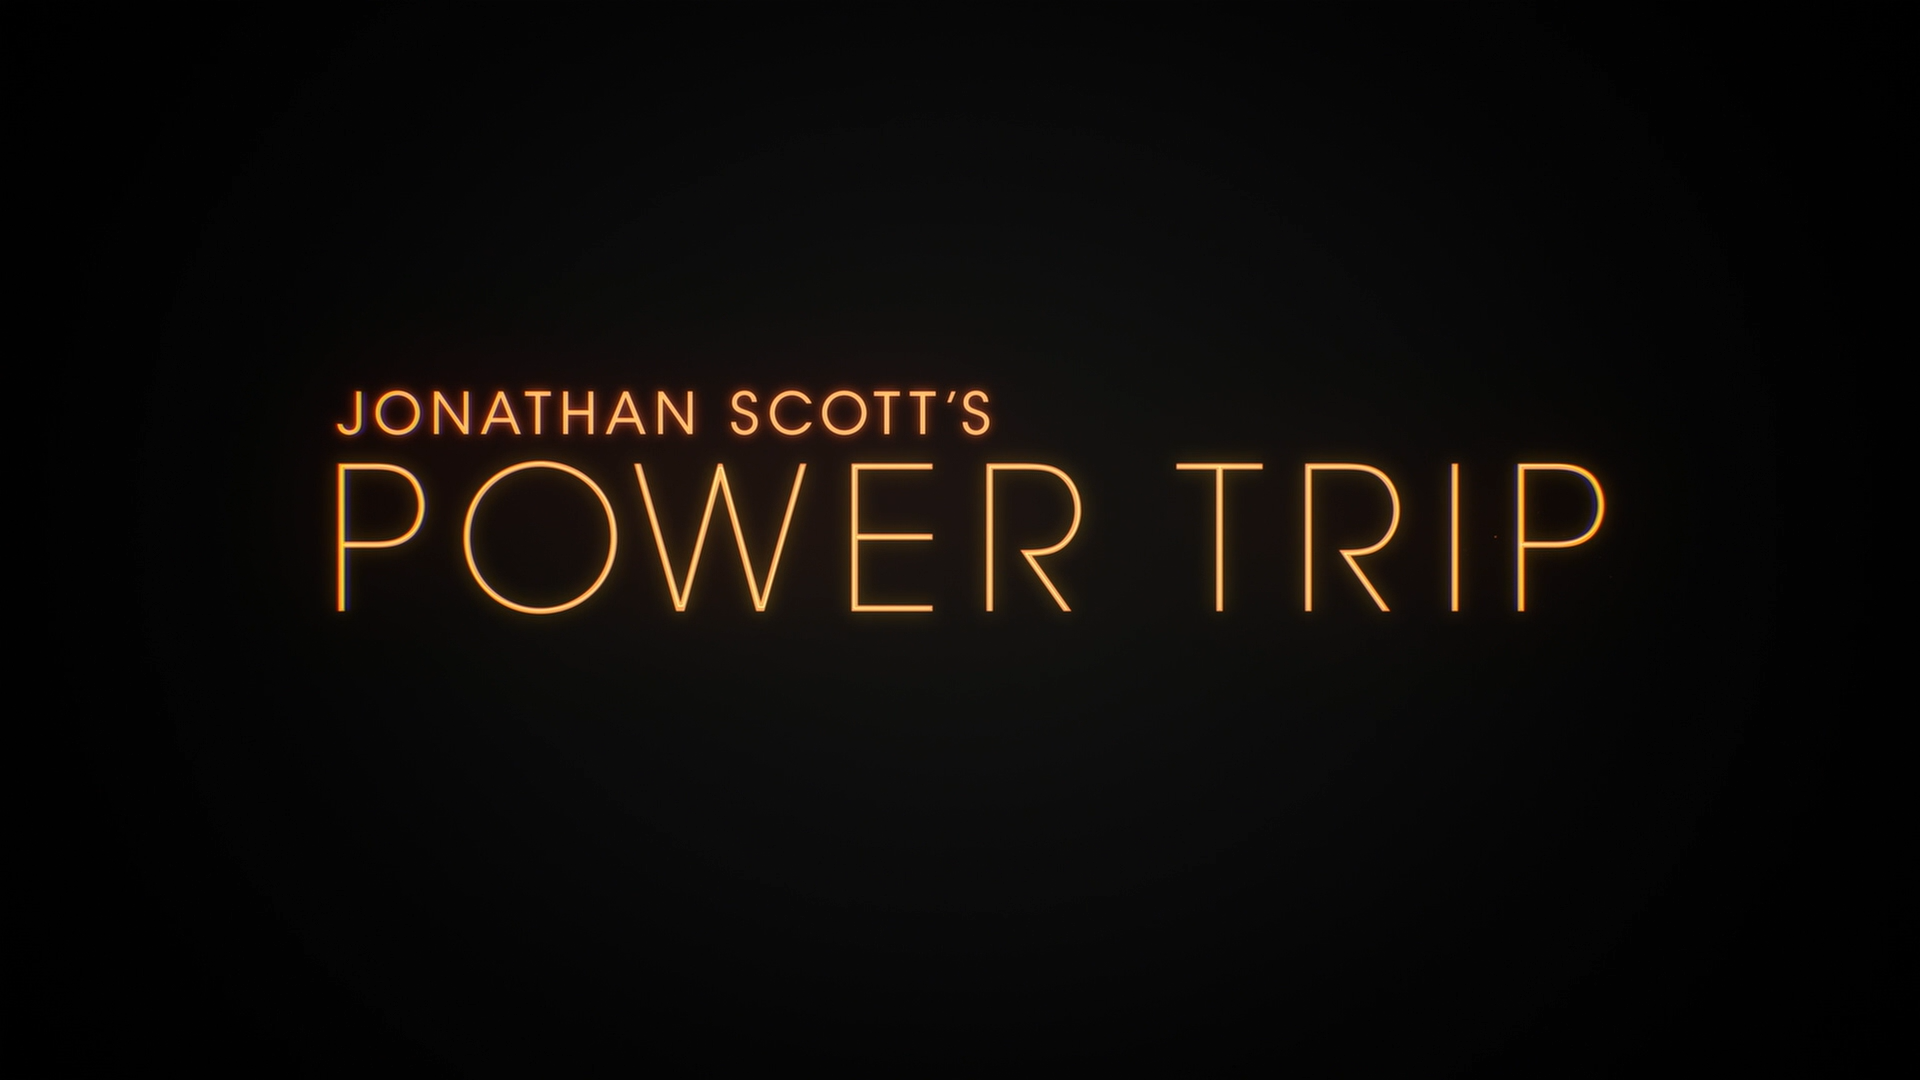 jonathan scotts power trip title card